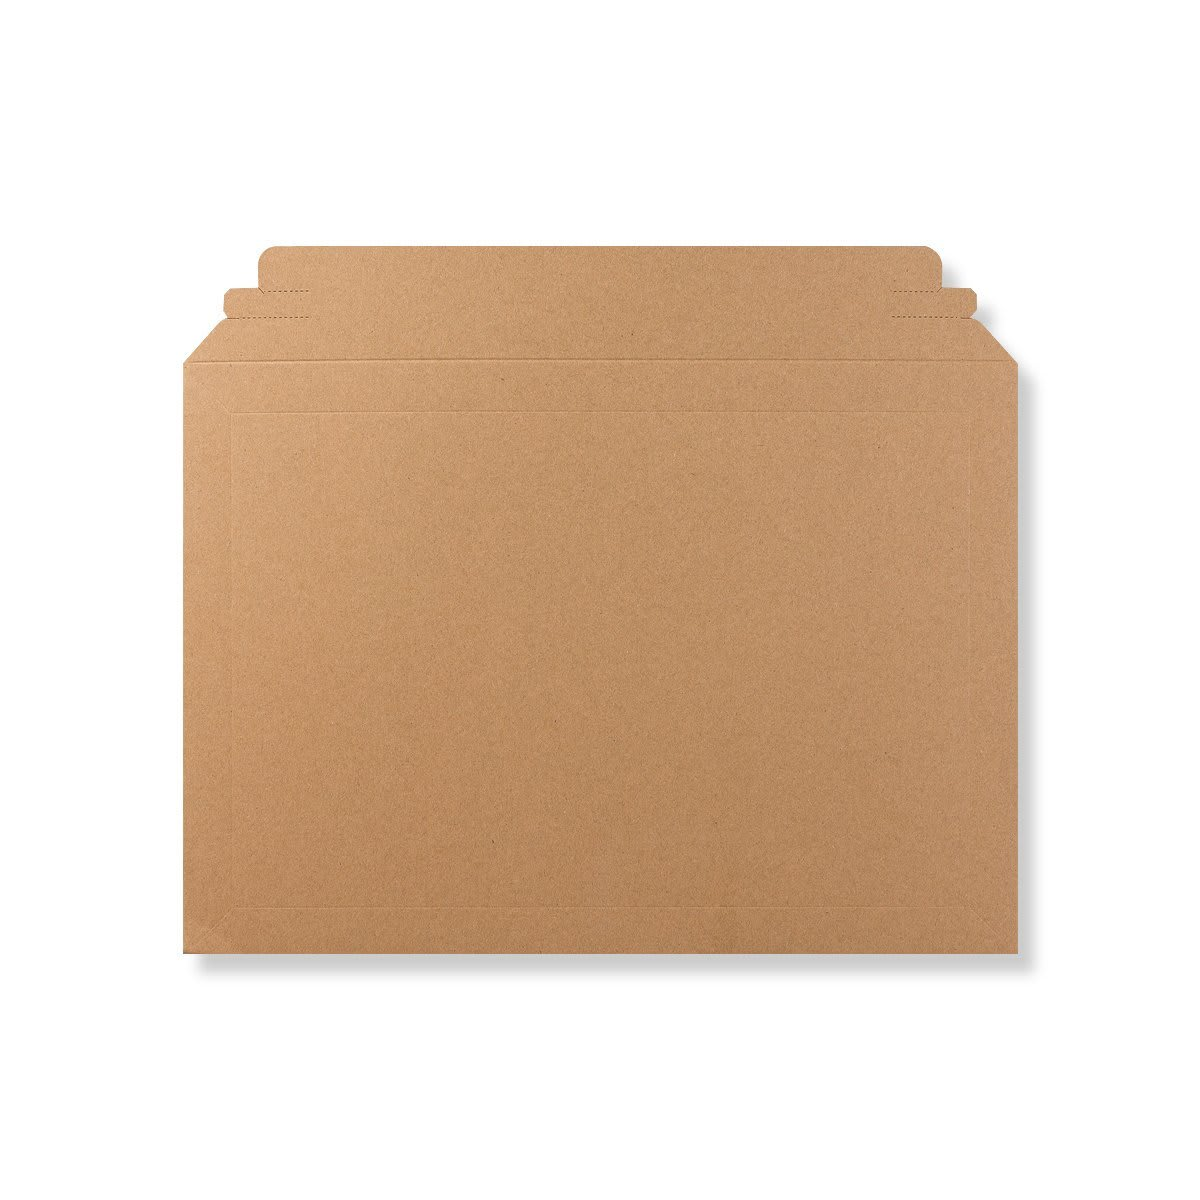 249 x 352mm CAPACITY BOOK MAILERS 400GSM